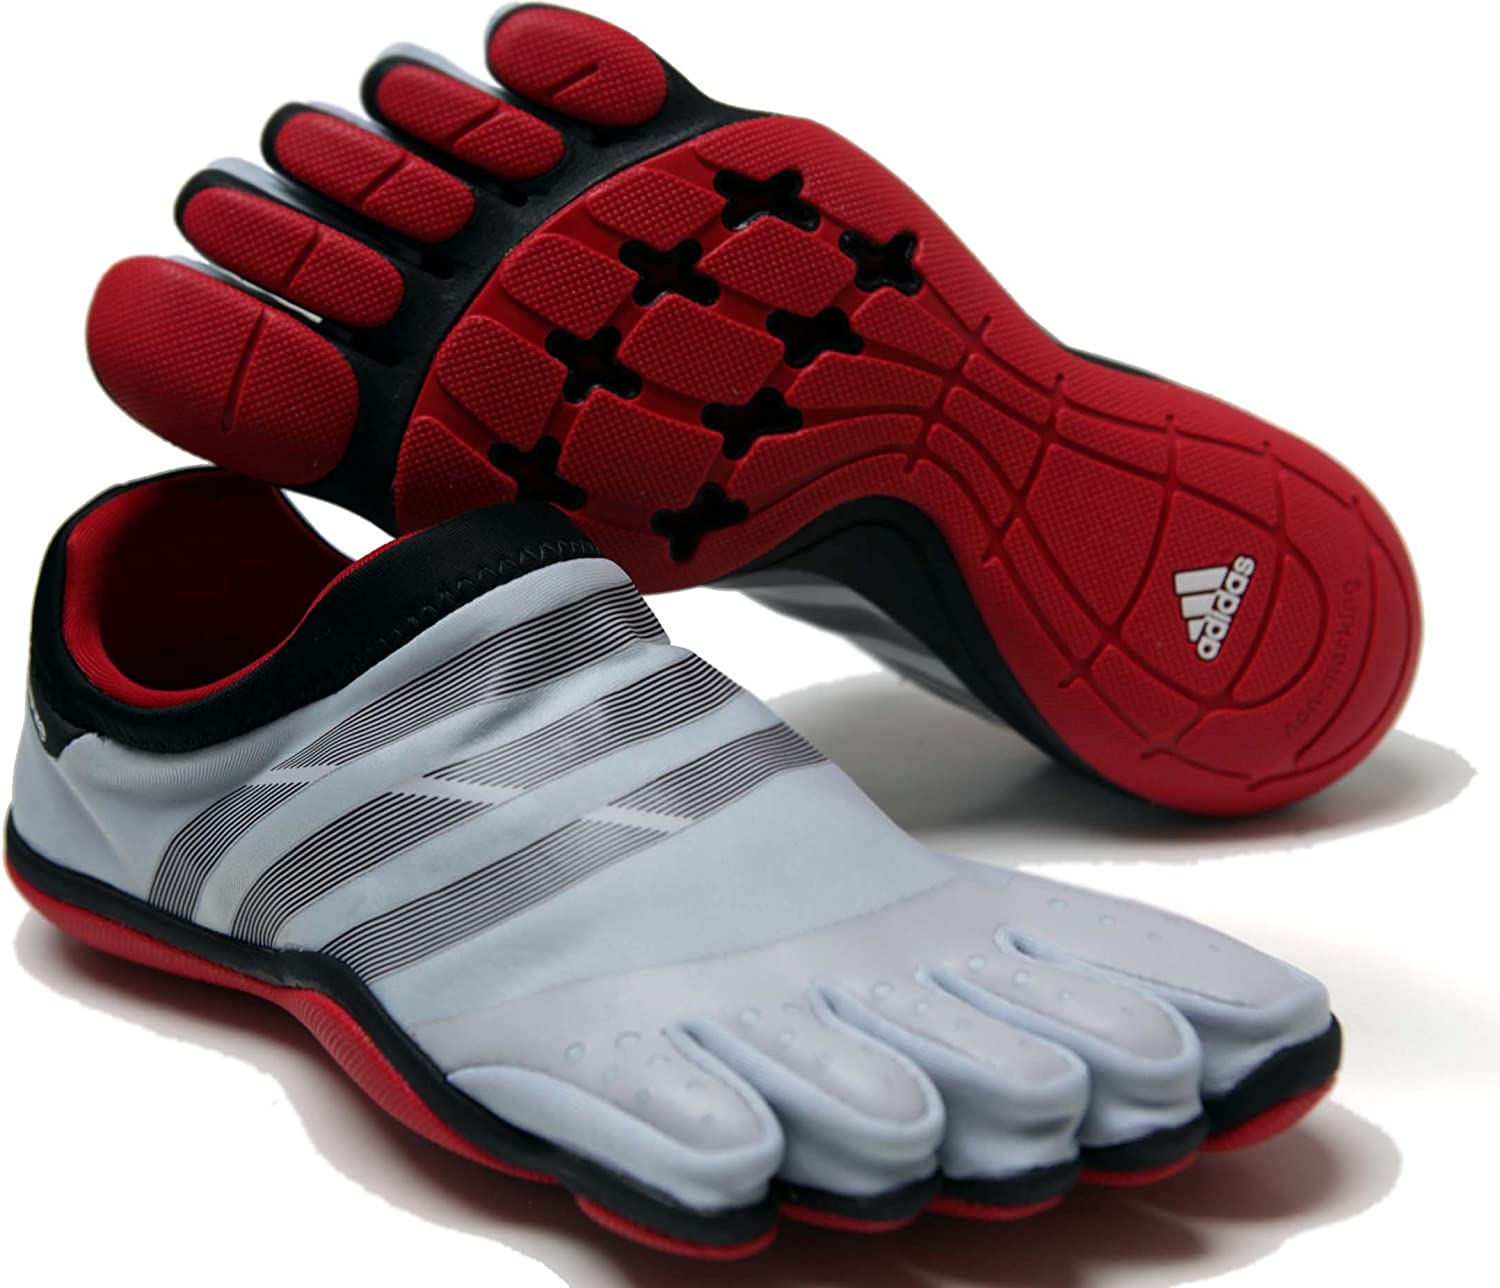 adidas five finger - 61% remise - www